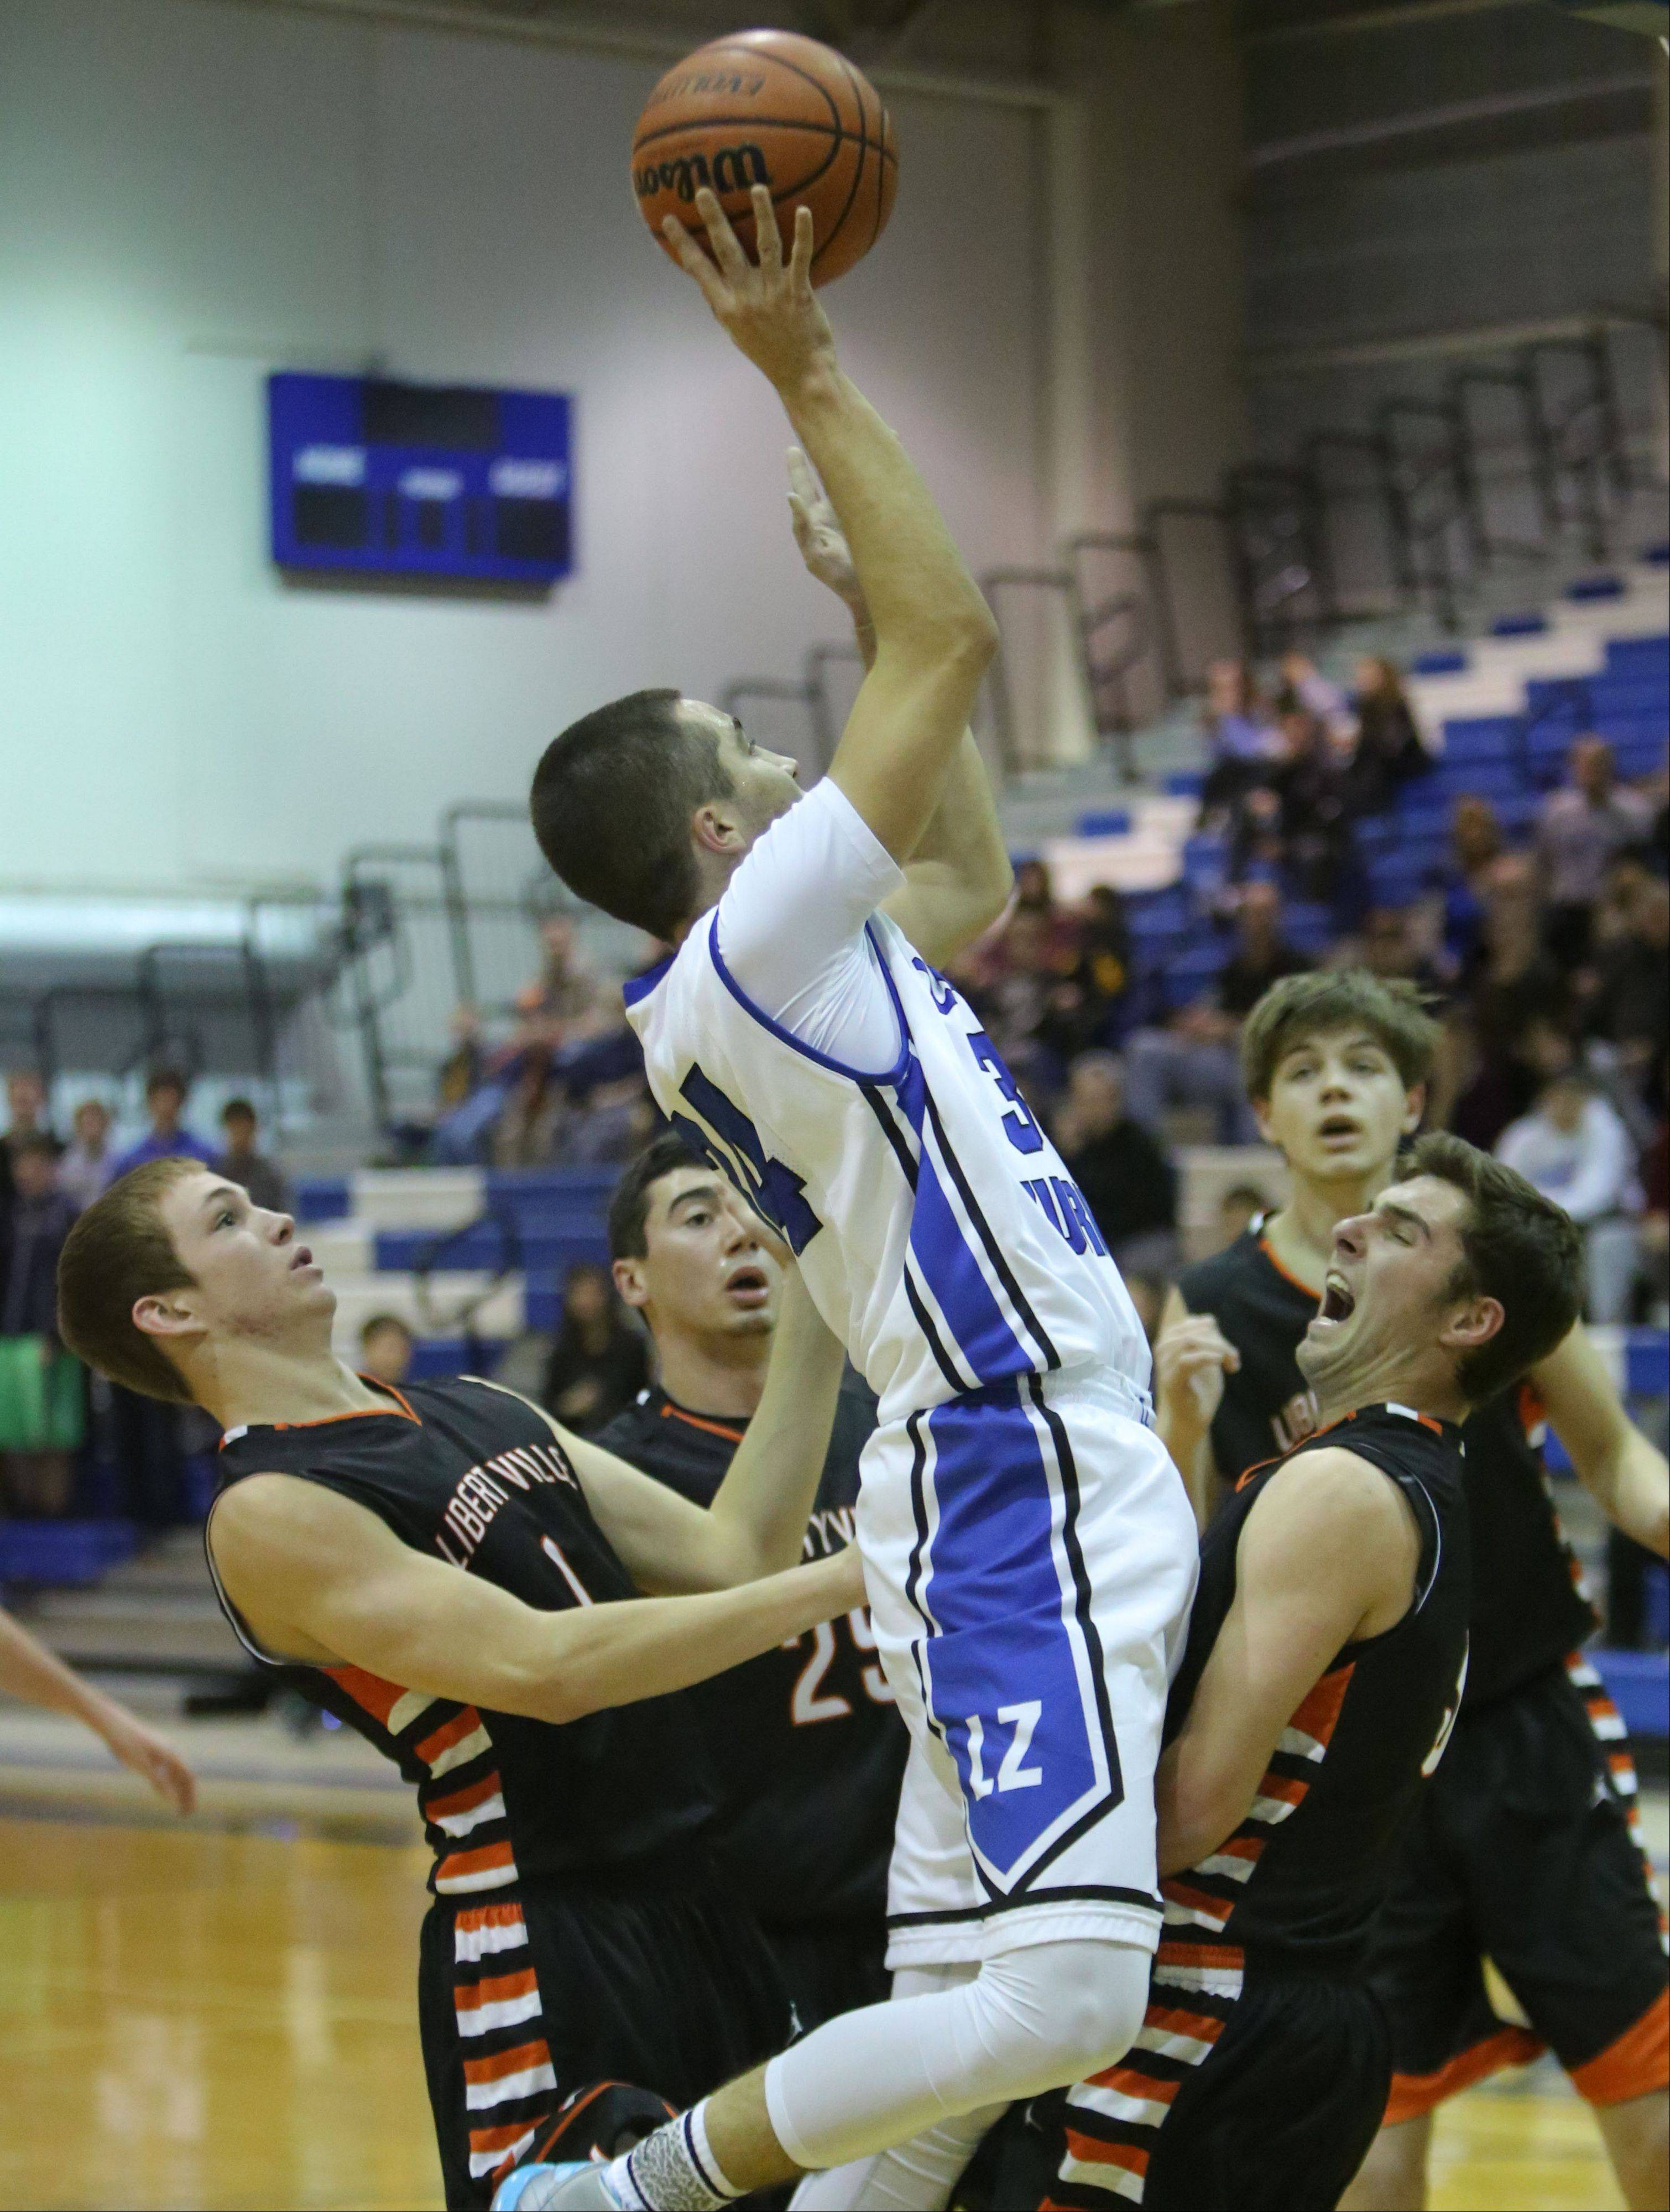 Lake Zurich's Mike Travlos, middle, drives on Libertyville's, from left, Brian Scanlan, Johnny Vernasco and Matt Reed on Wednesday night at Lake Zurich High School.